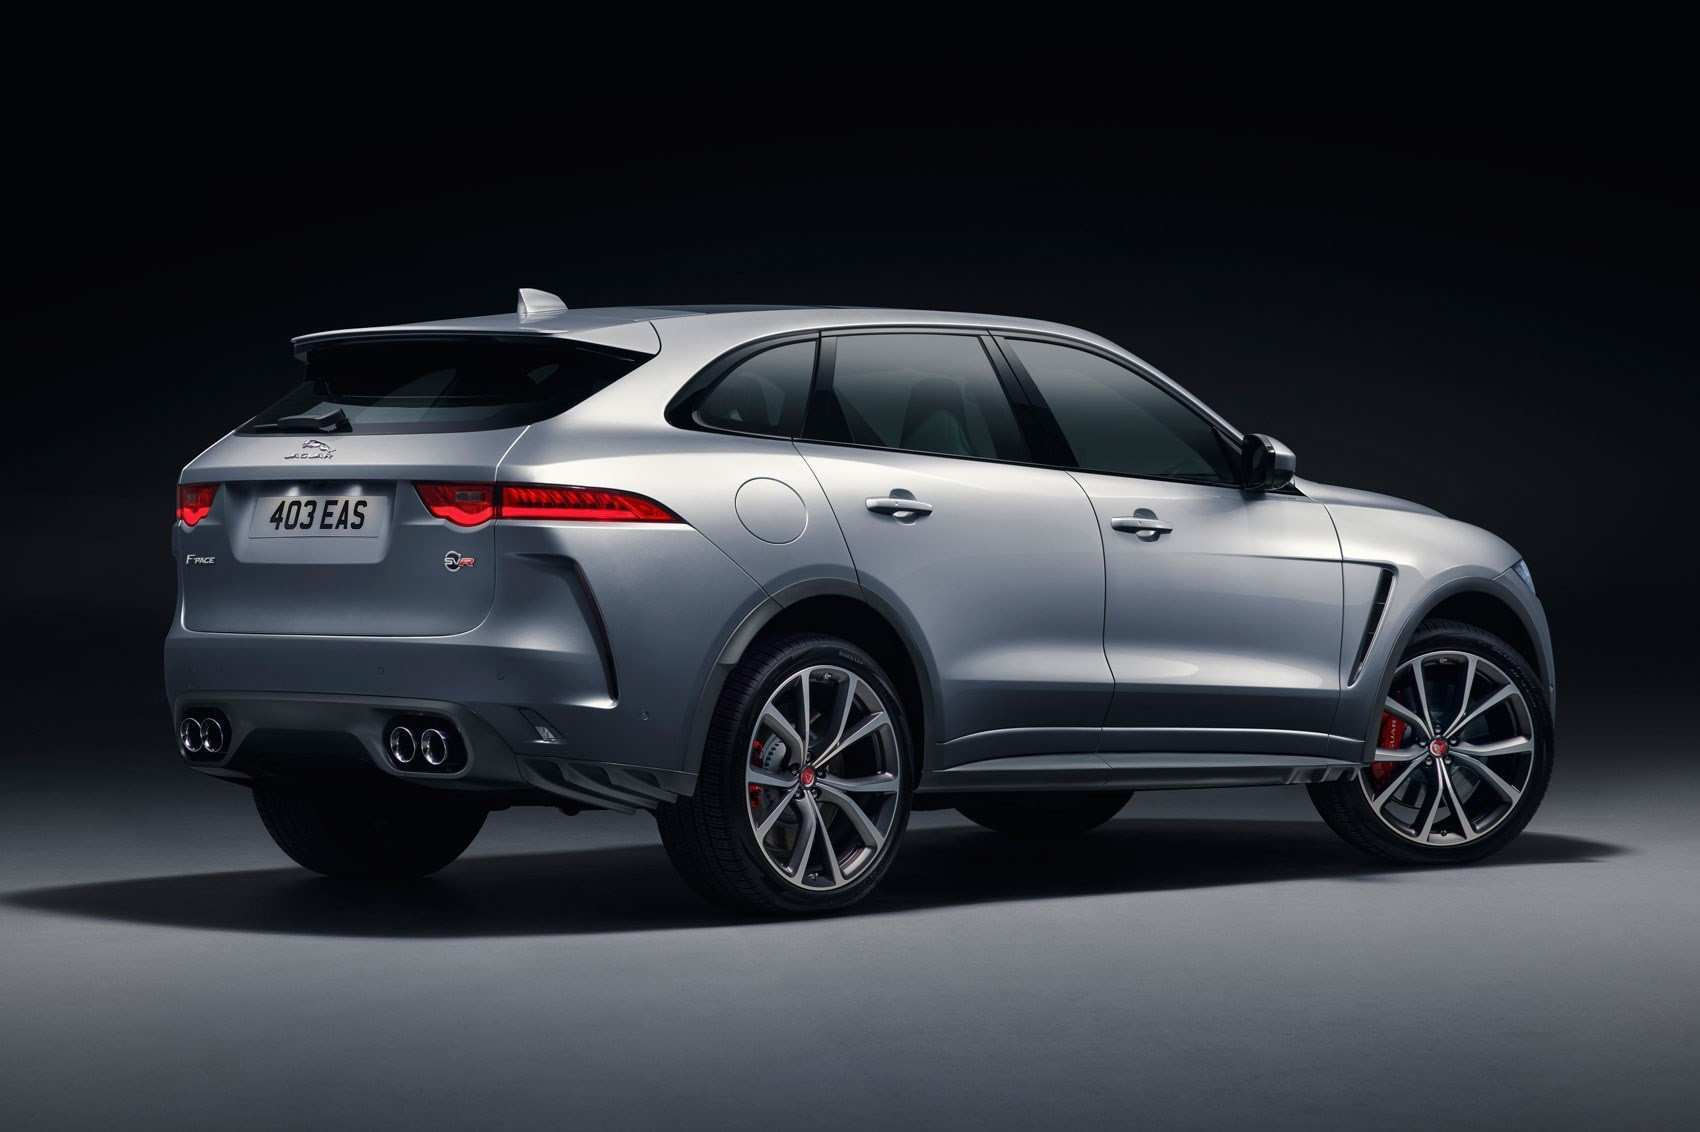 60 Concept of 2020 Jaguar F Pace Svr Exterior First Drive for 2020 Jaguar F Pace Svr Exterior